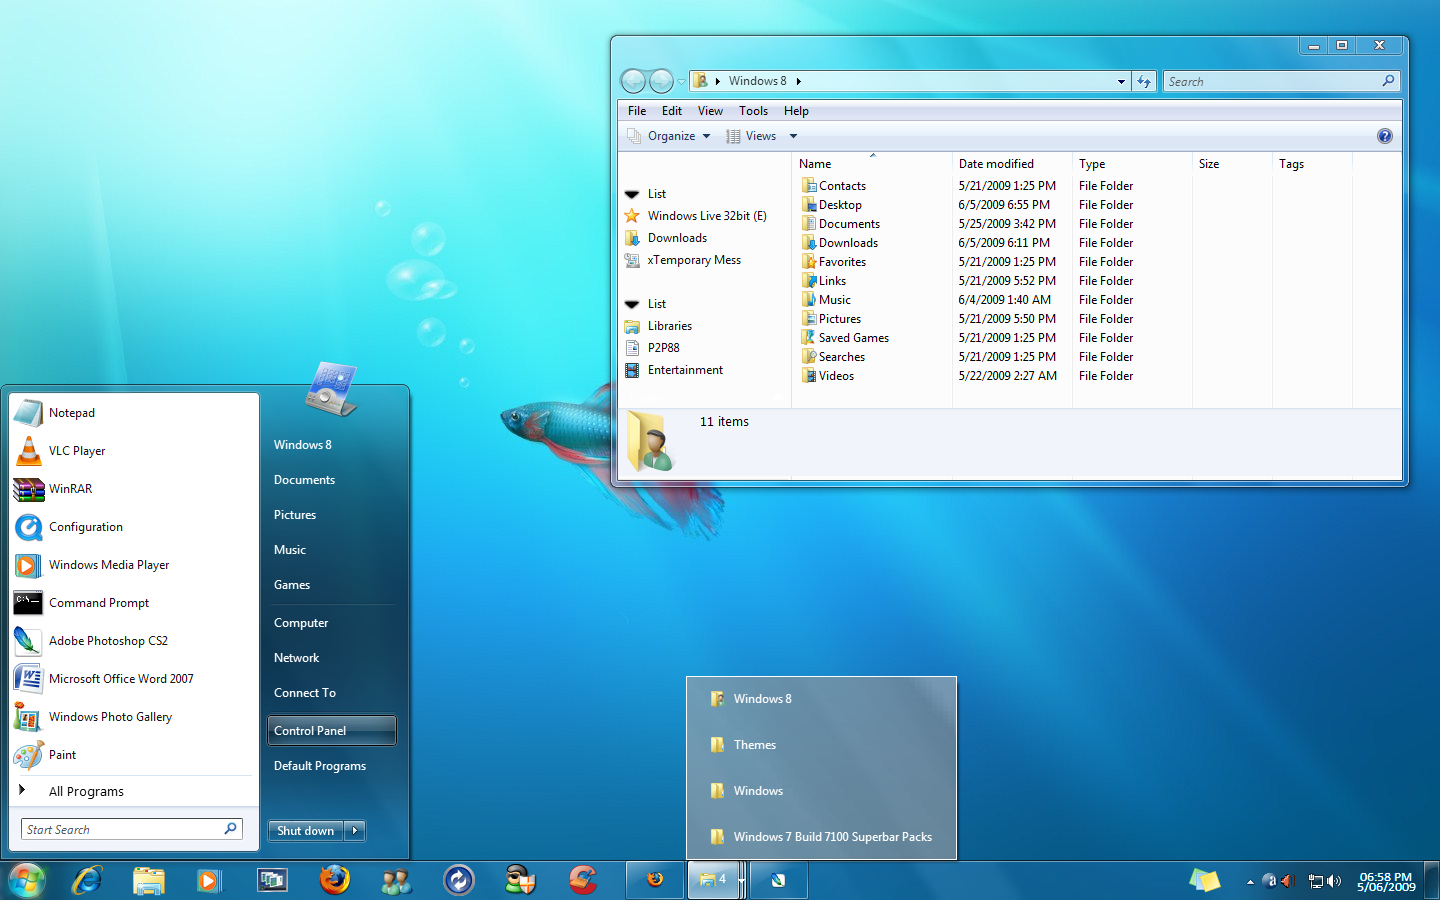 Windows 7 Build 7100 Superbar by mufflerexoz